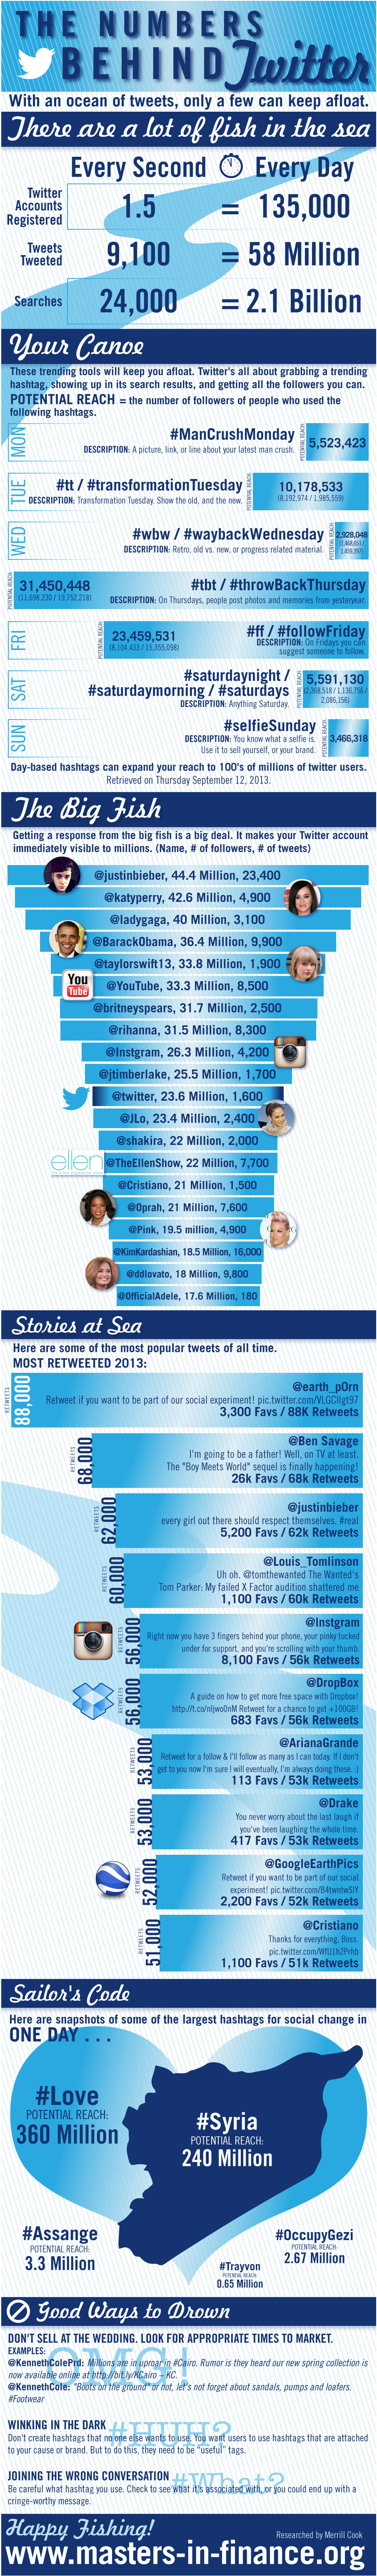 sensational social mediafacts and statistics behind Twitter